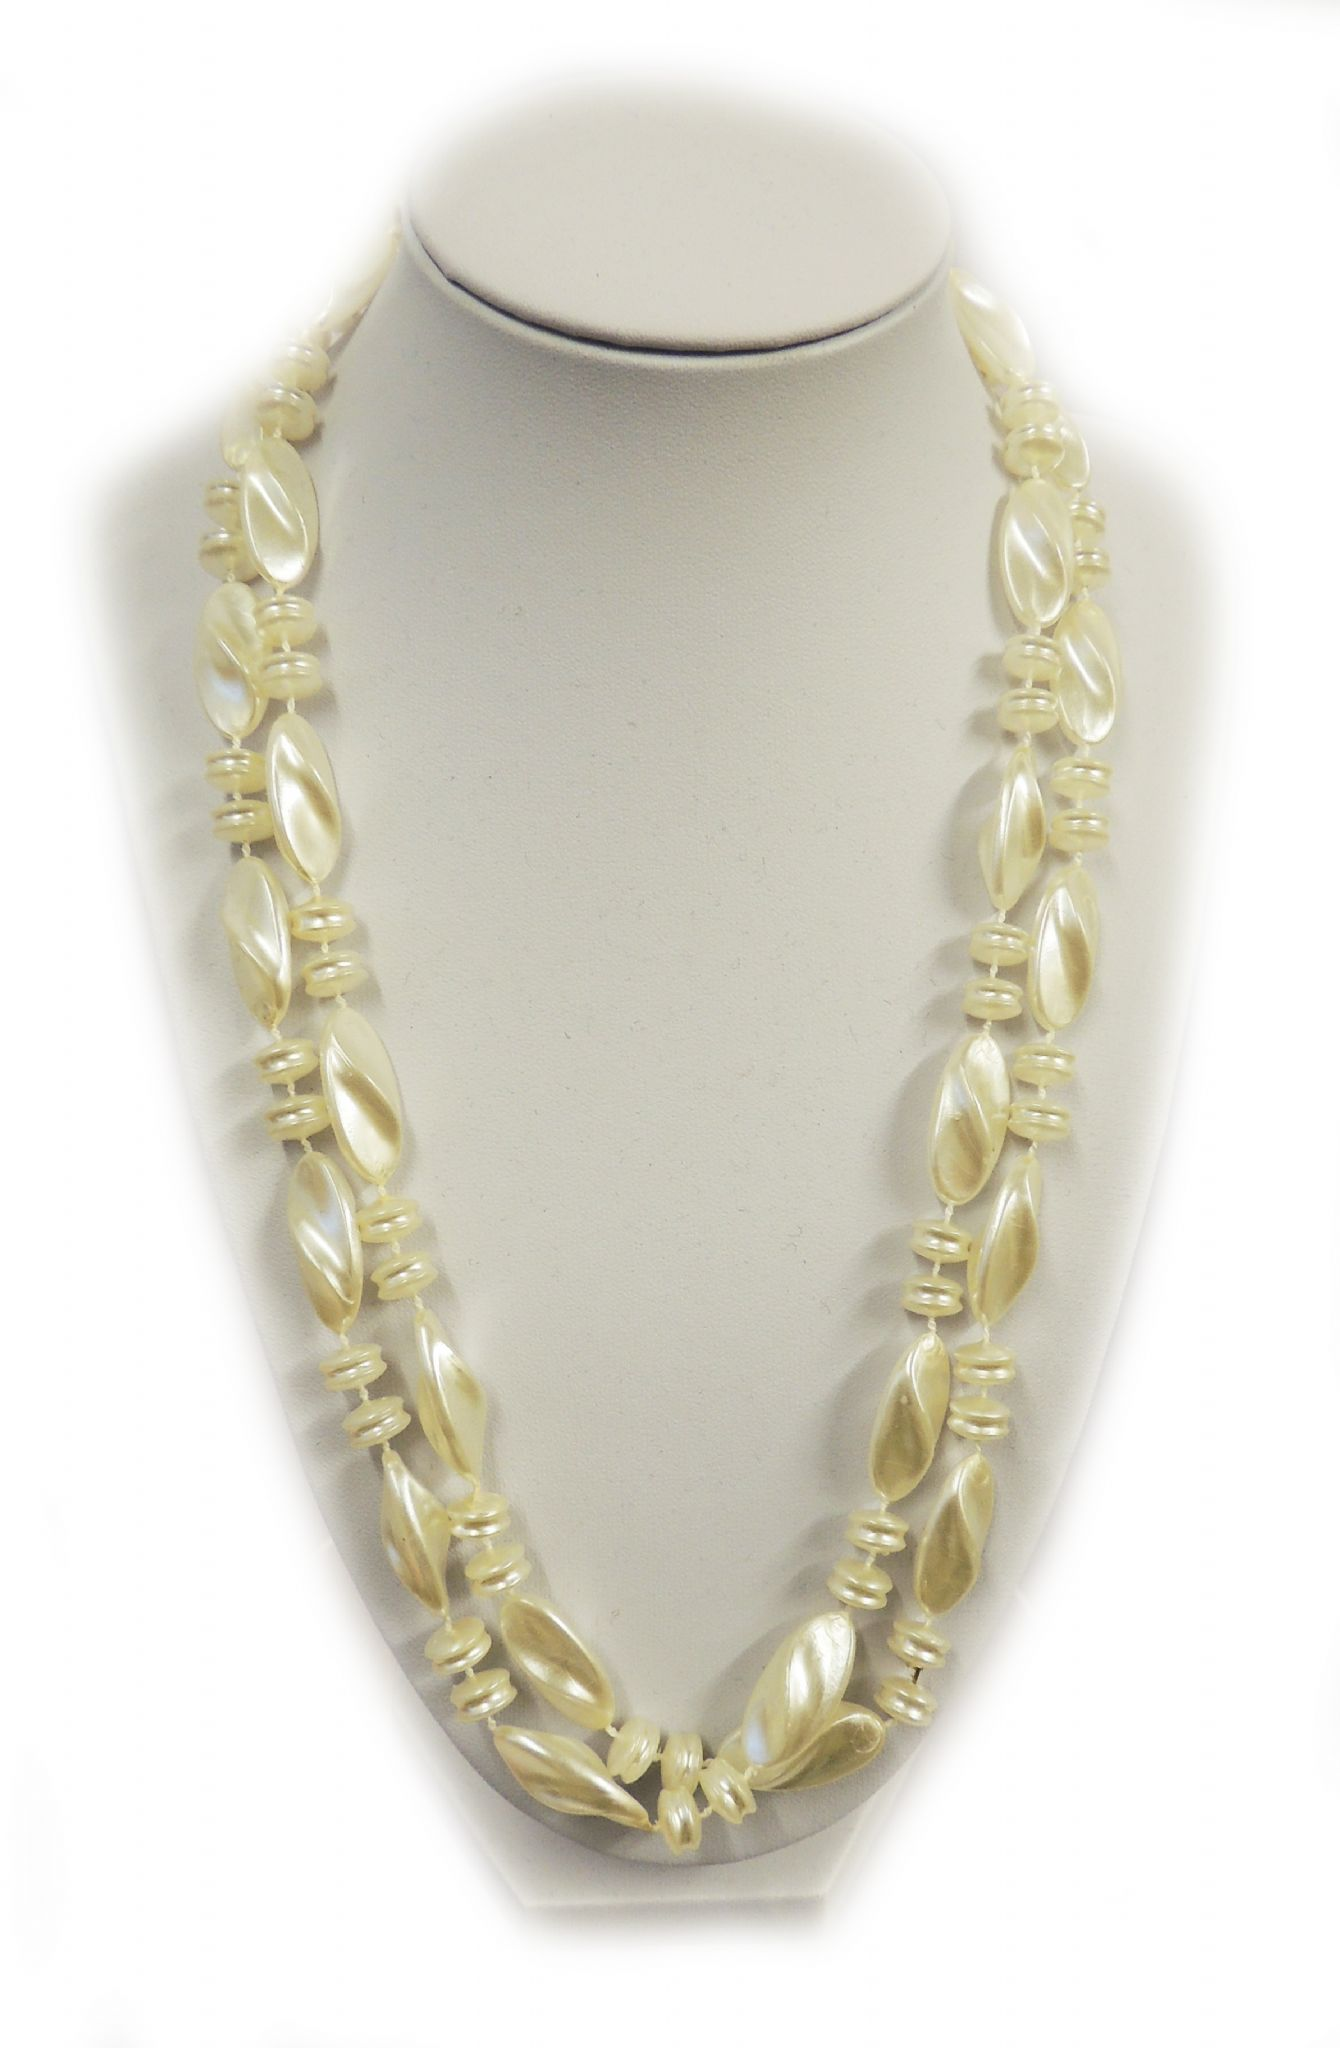 New Vintage 1920\'s Style 42 inch Long Charleston Flapper Necklace ...